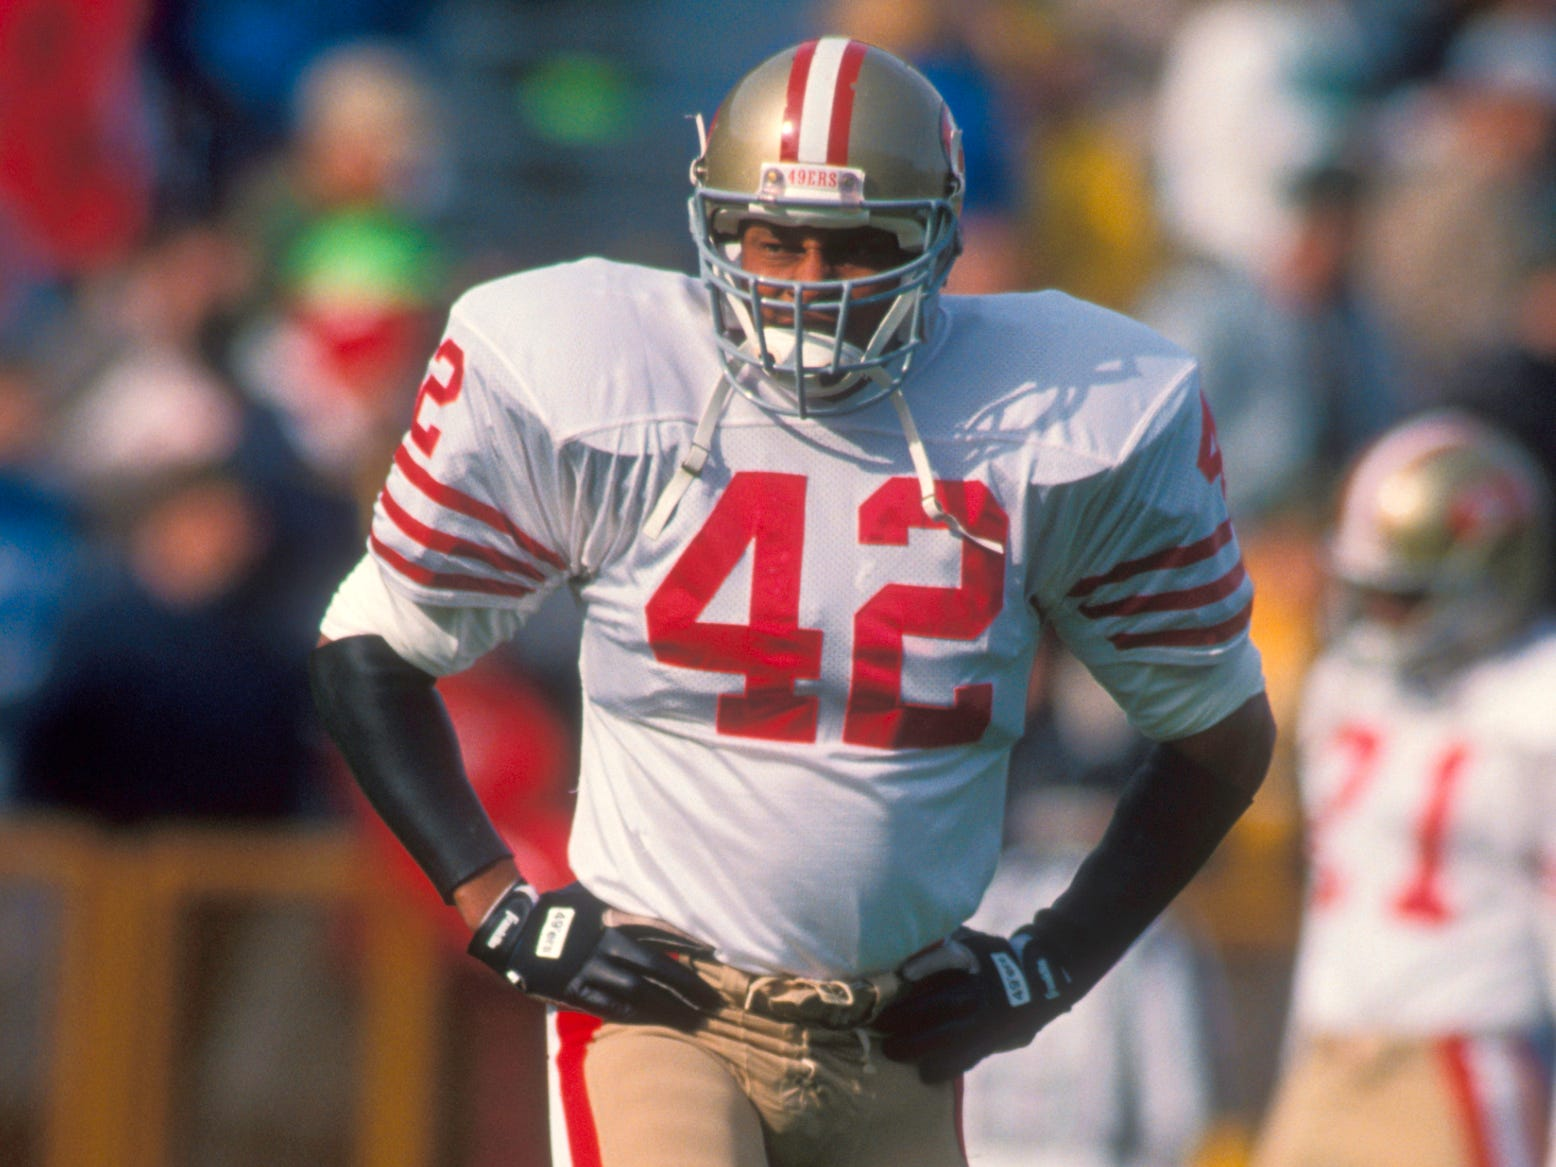 Ronnie Lott - Had a finger amputated so he wouldn't miss playing time.